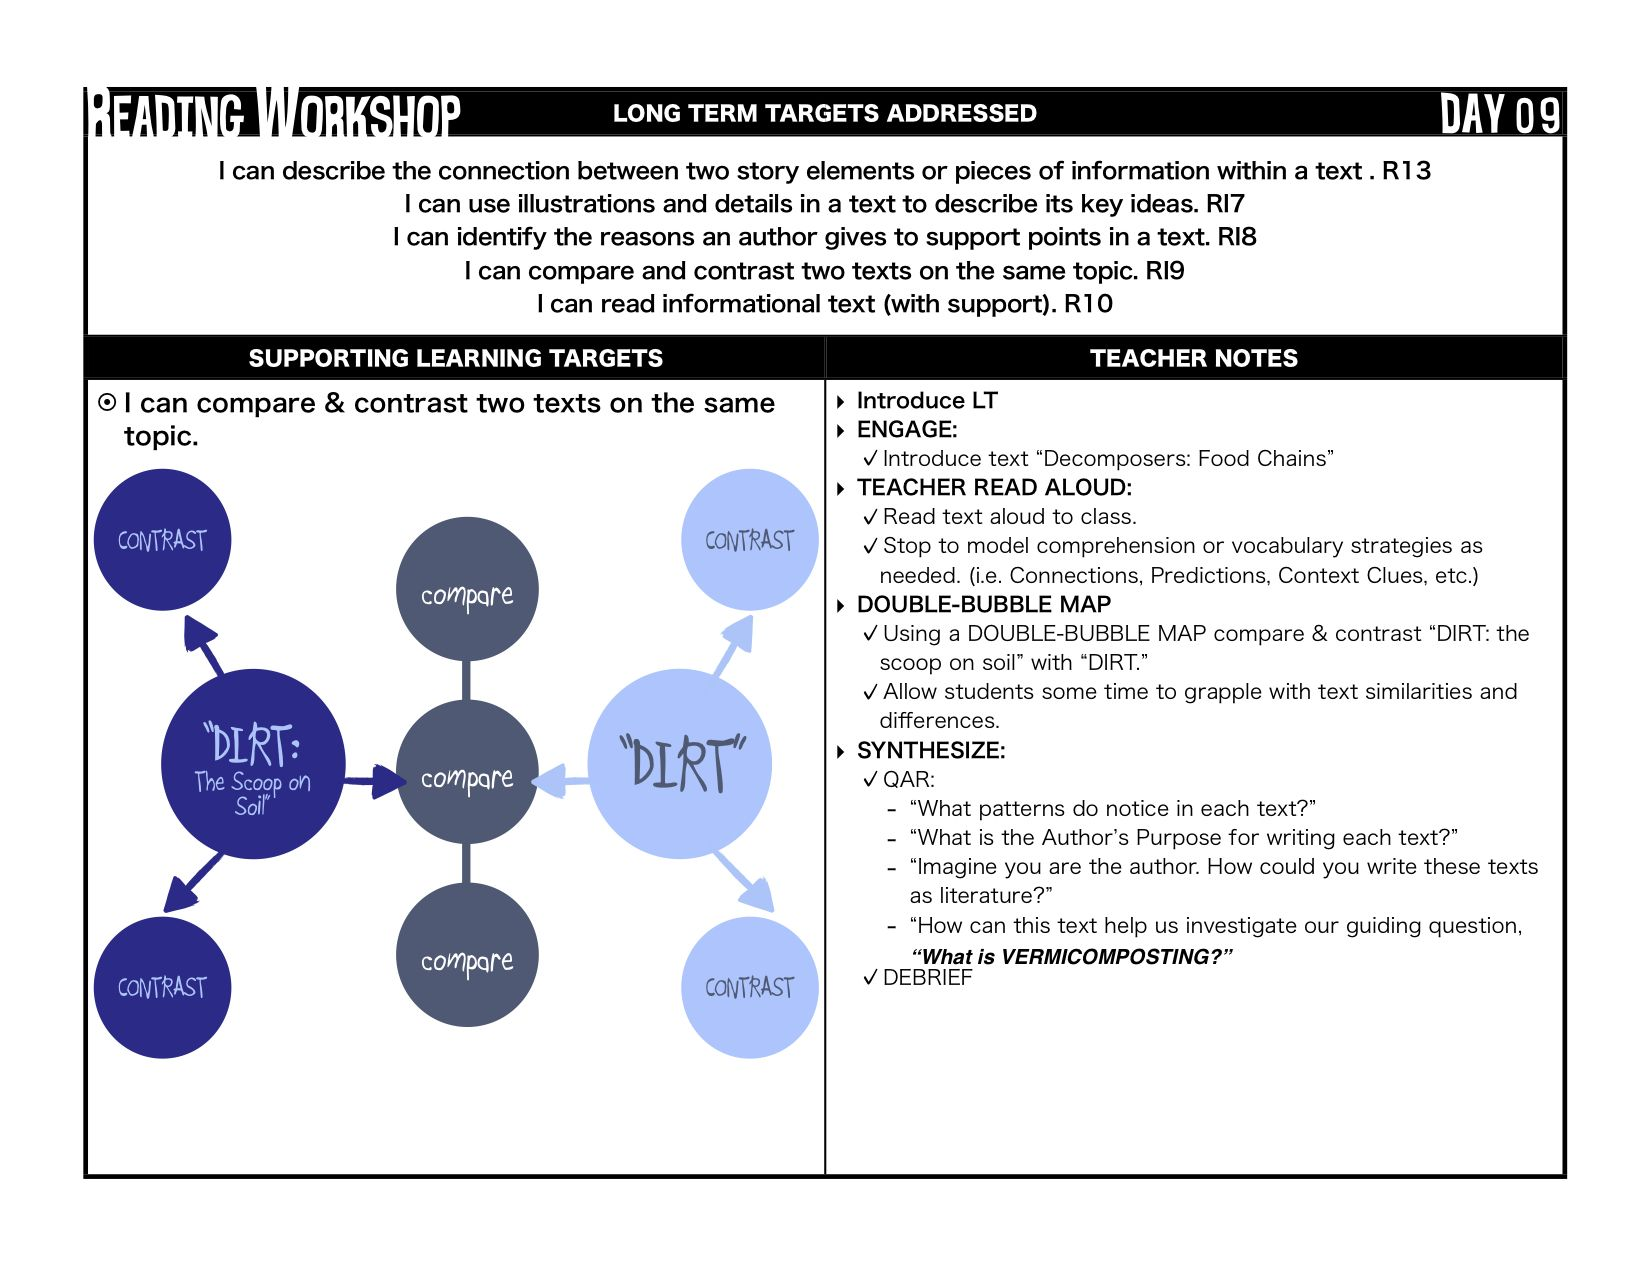 The Double Bubble Map Helps Use Compare And Contrast Two